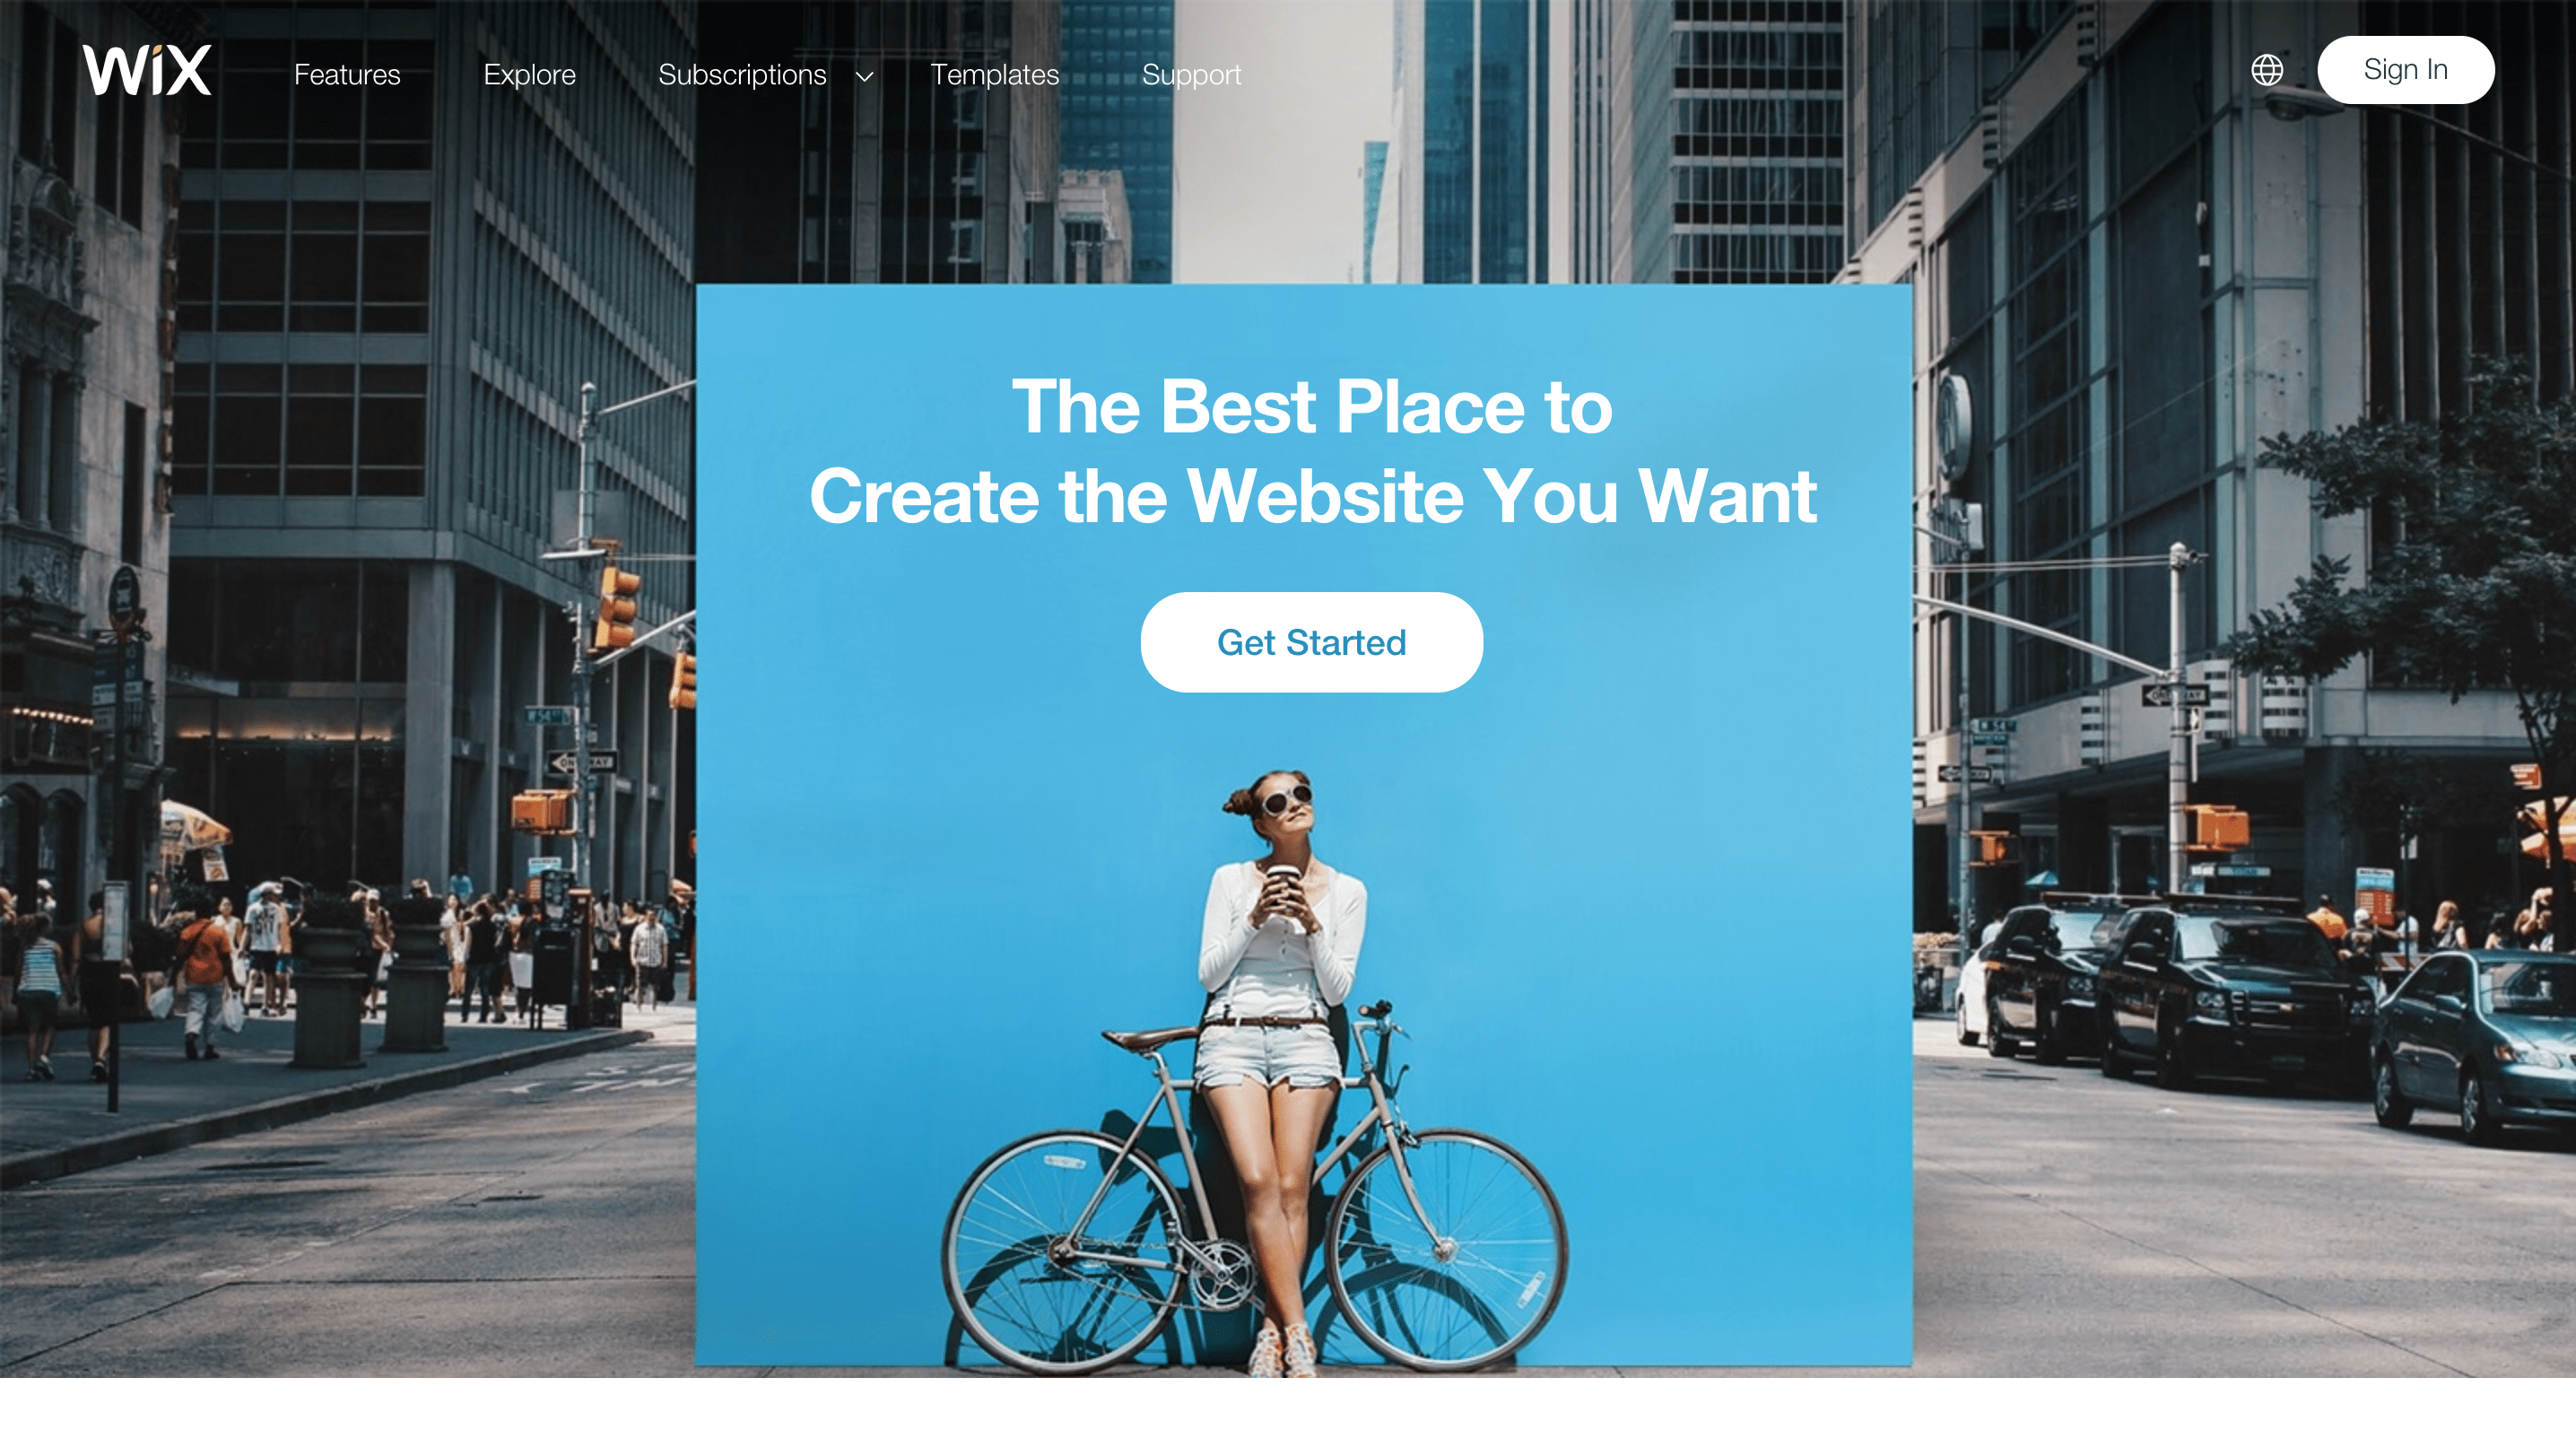 Why You Shouldn't Use Wix for Your Business Website